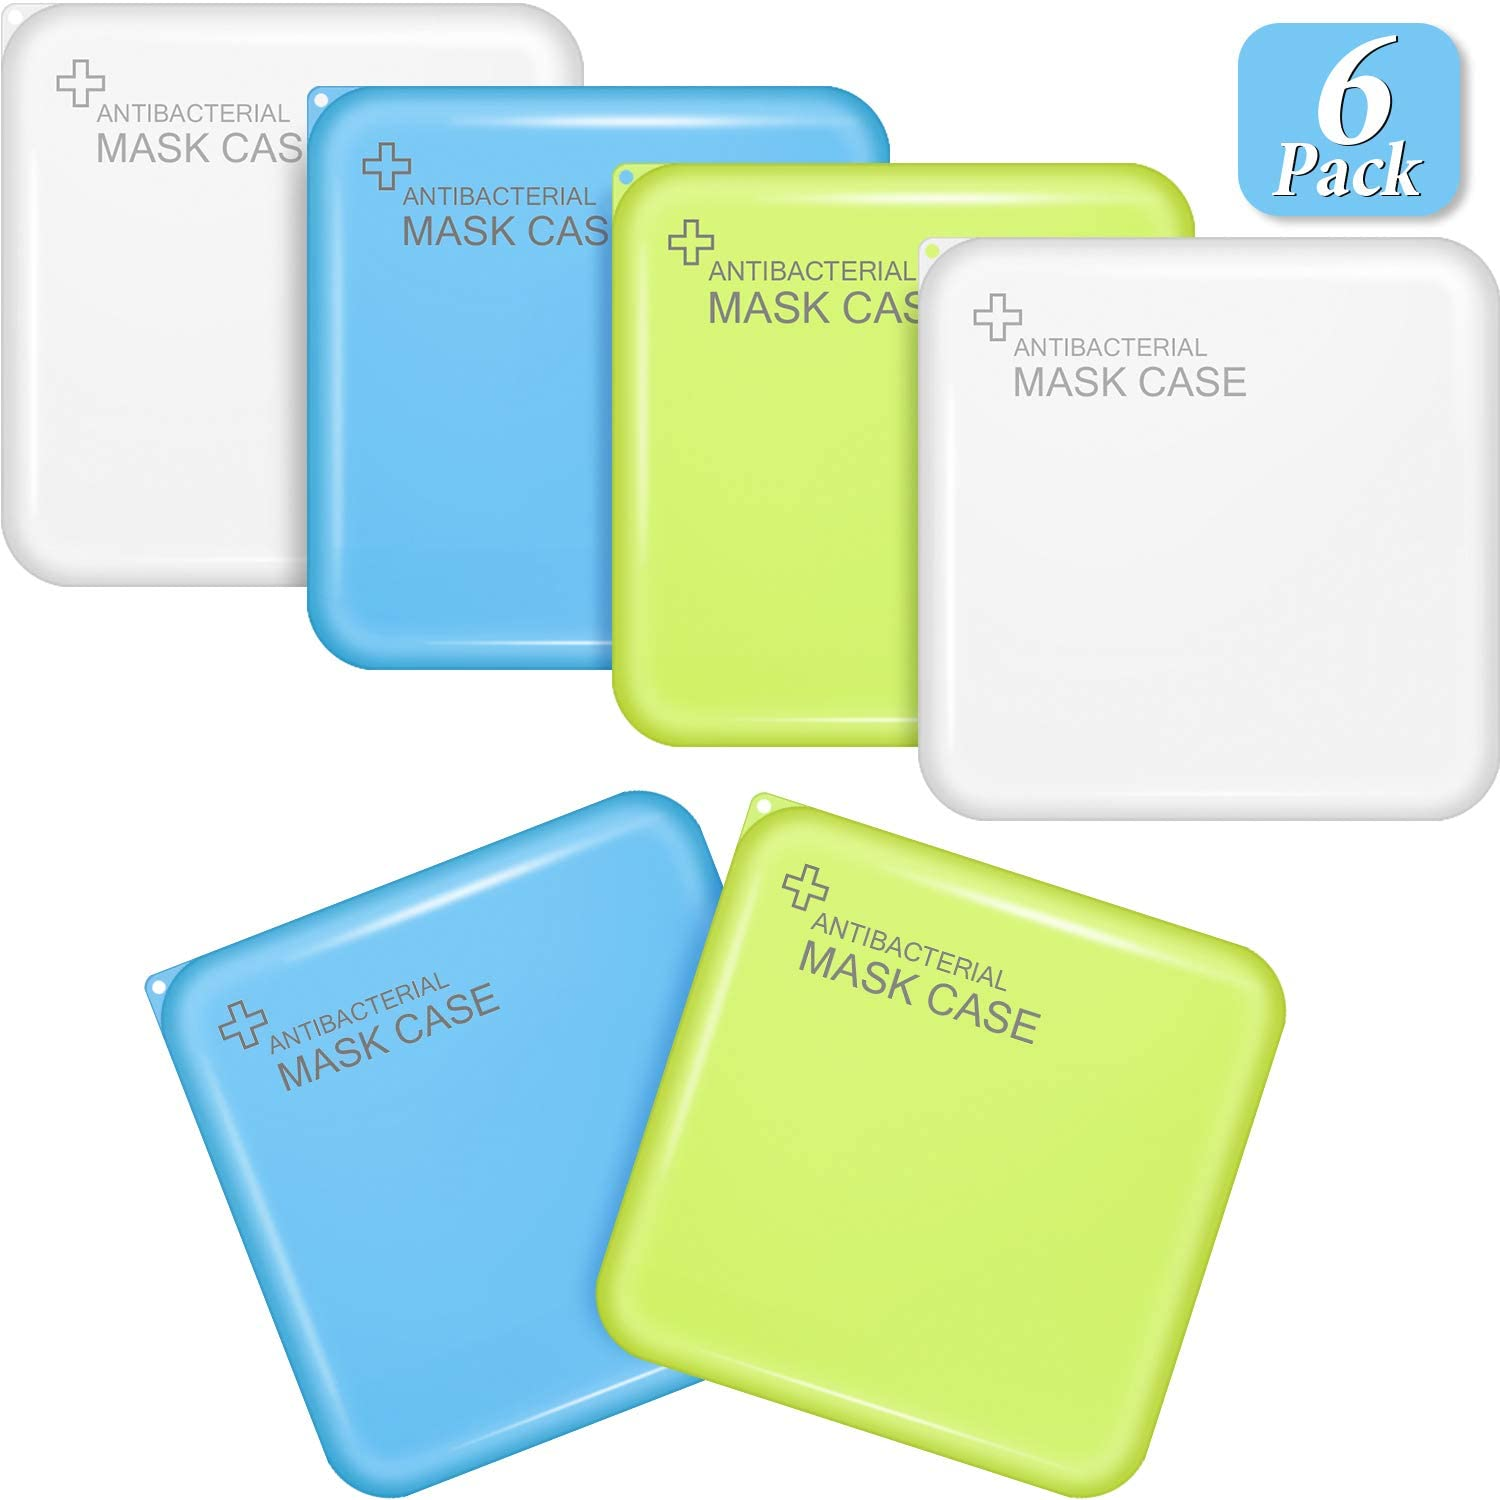 6 Pieces Plastic Face Cover Storage Case Portable Face Cover Storage Box Reusable Face Covering Organizer Dustproof Mouth Cover Keeper Folder Pollution Prevention Storage Clip Containers